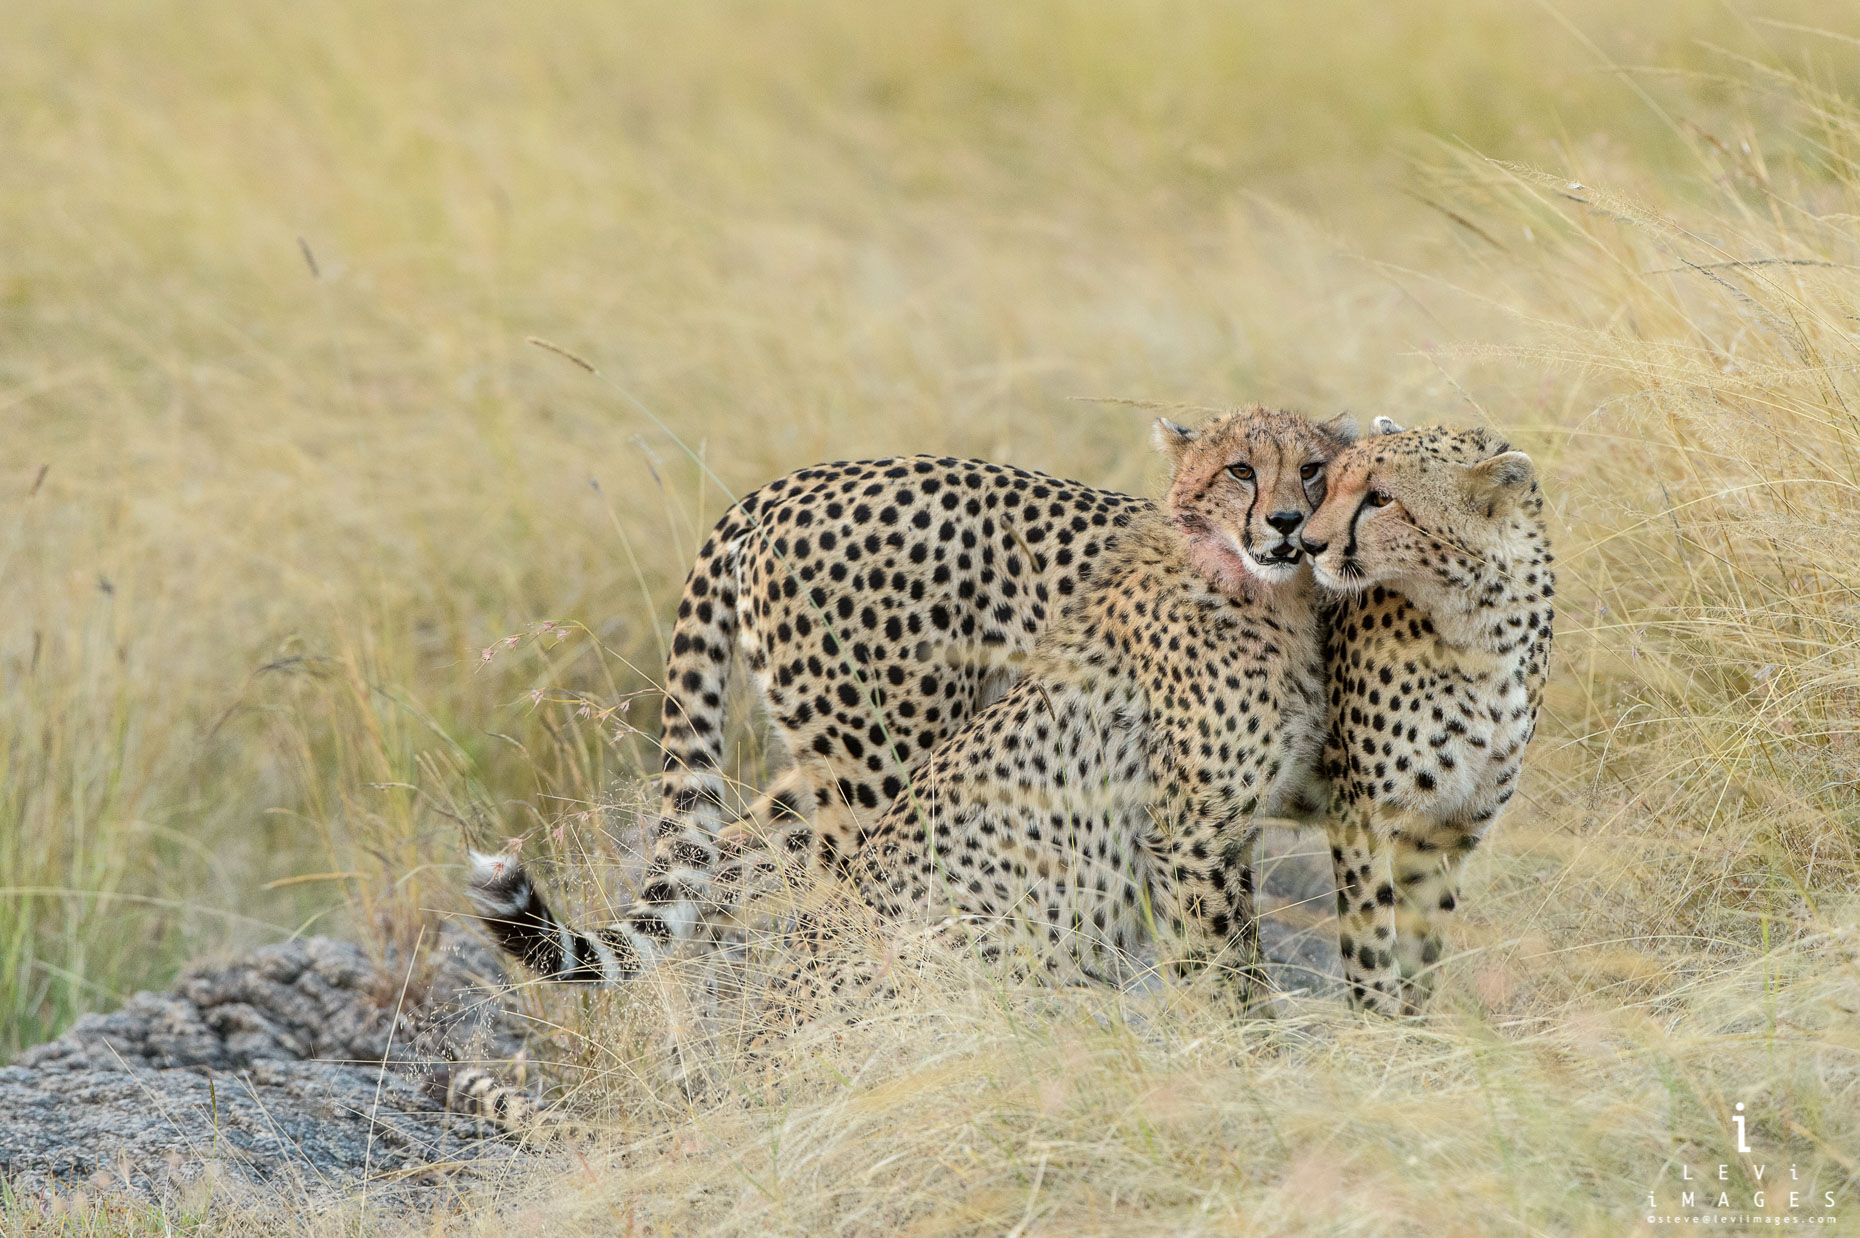 Two cheetahs (Acinonyx jubatus) being affectionate. Maasai Mara, Africa